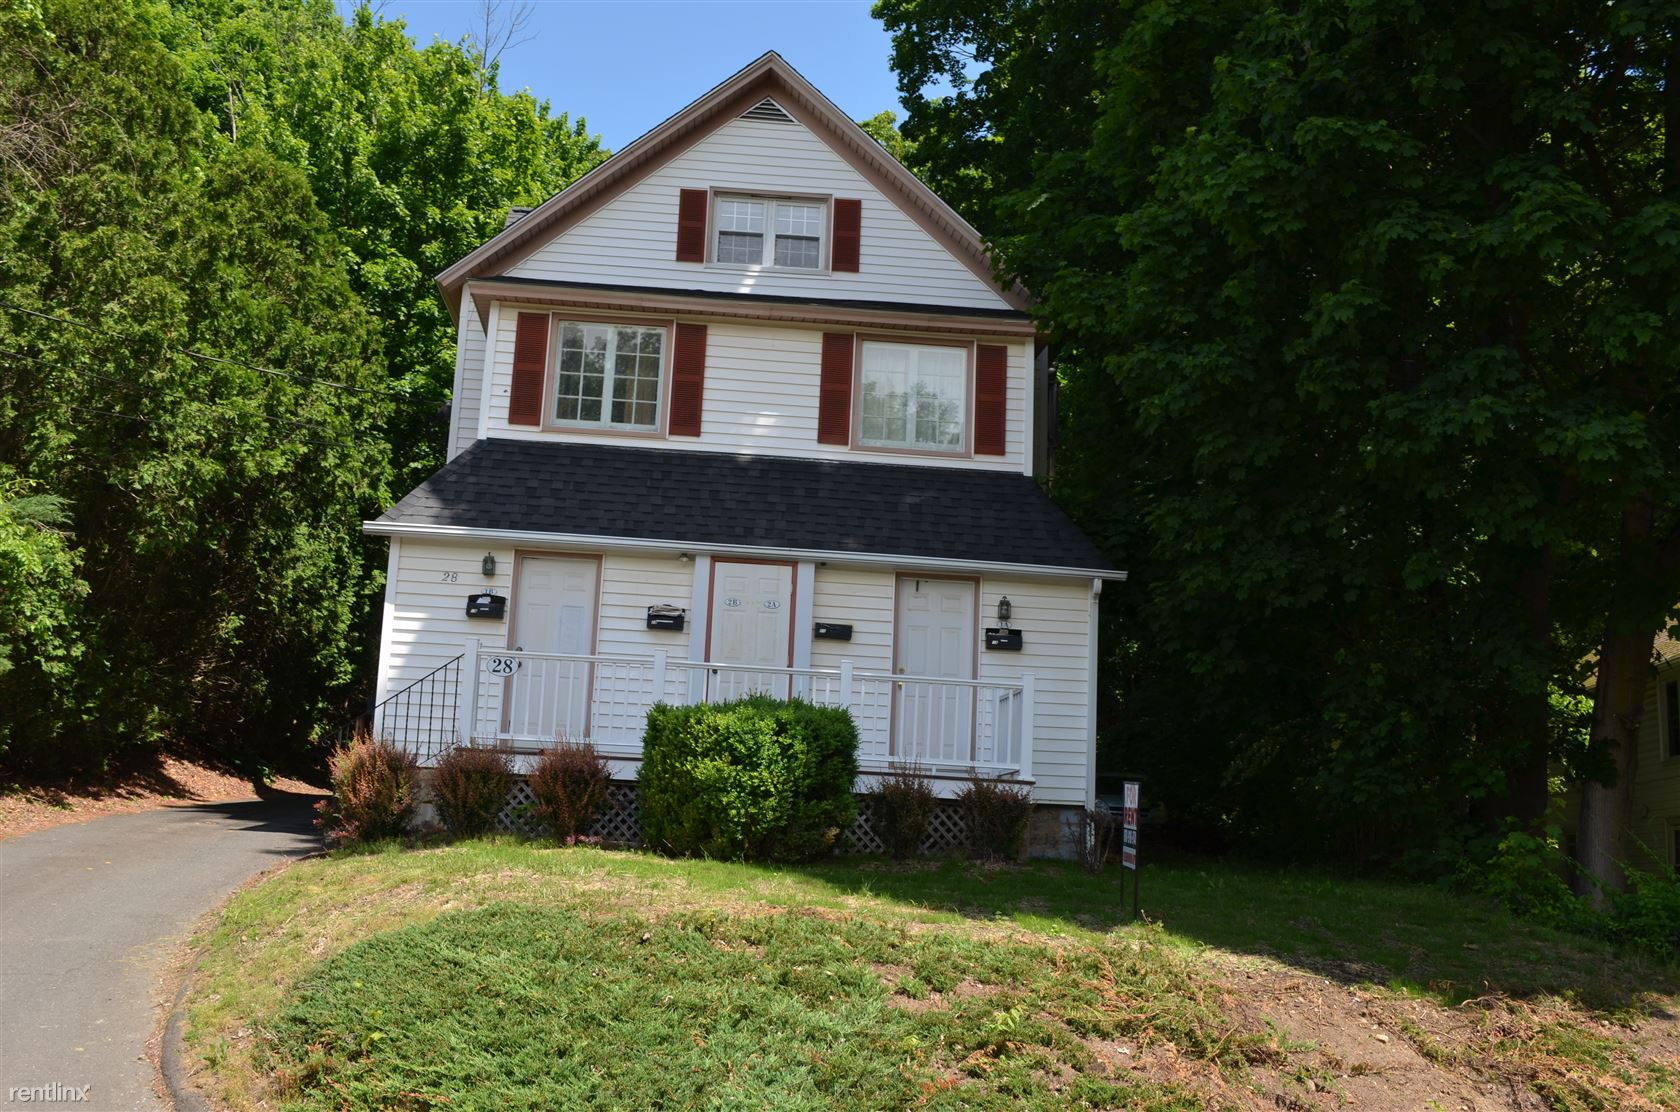 28 Hickok Ave, Bethel, CT - $875